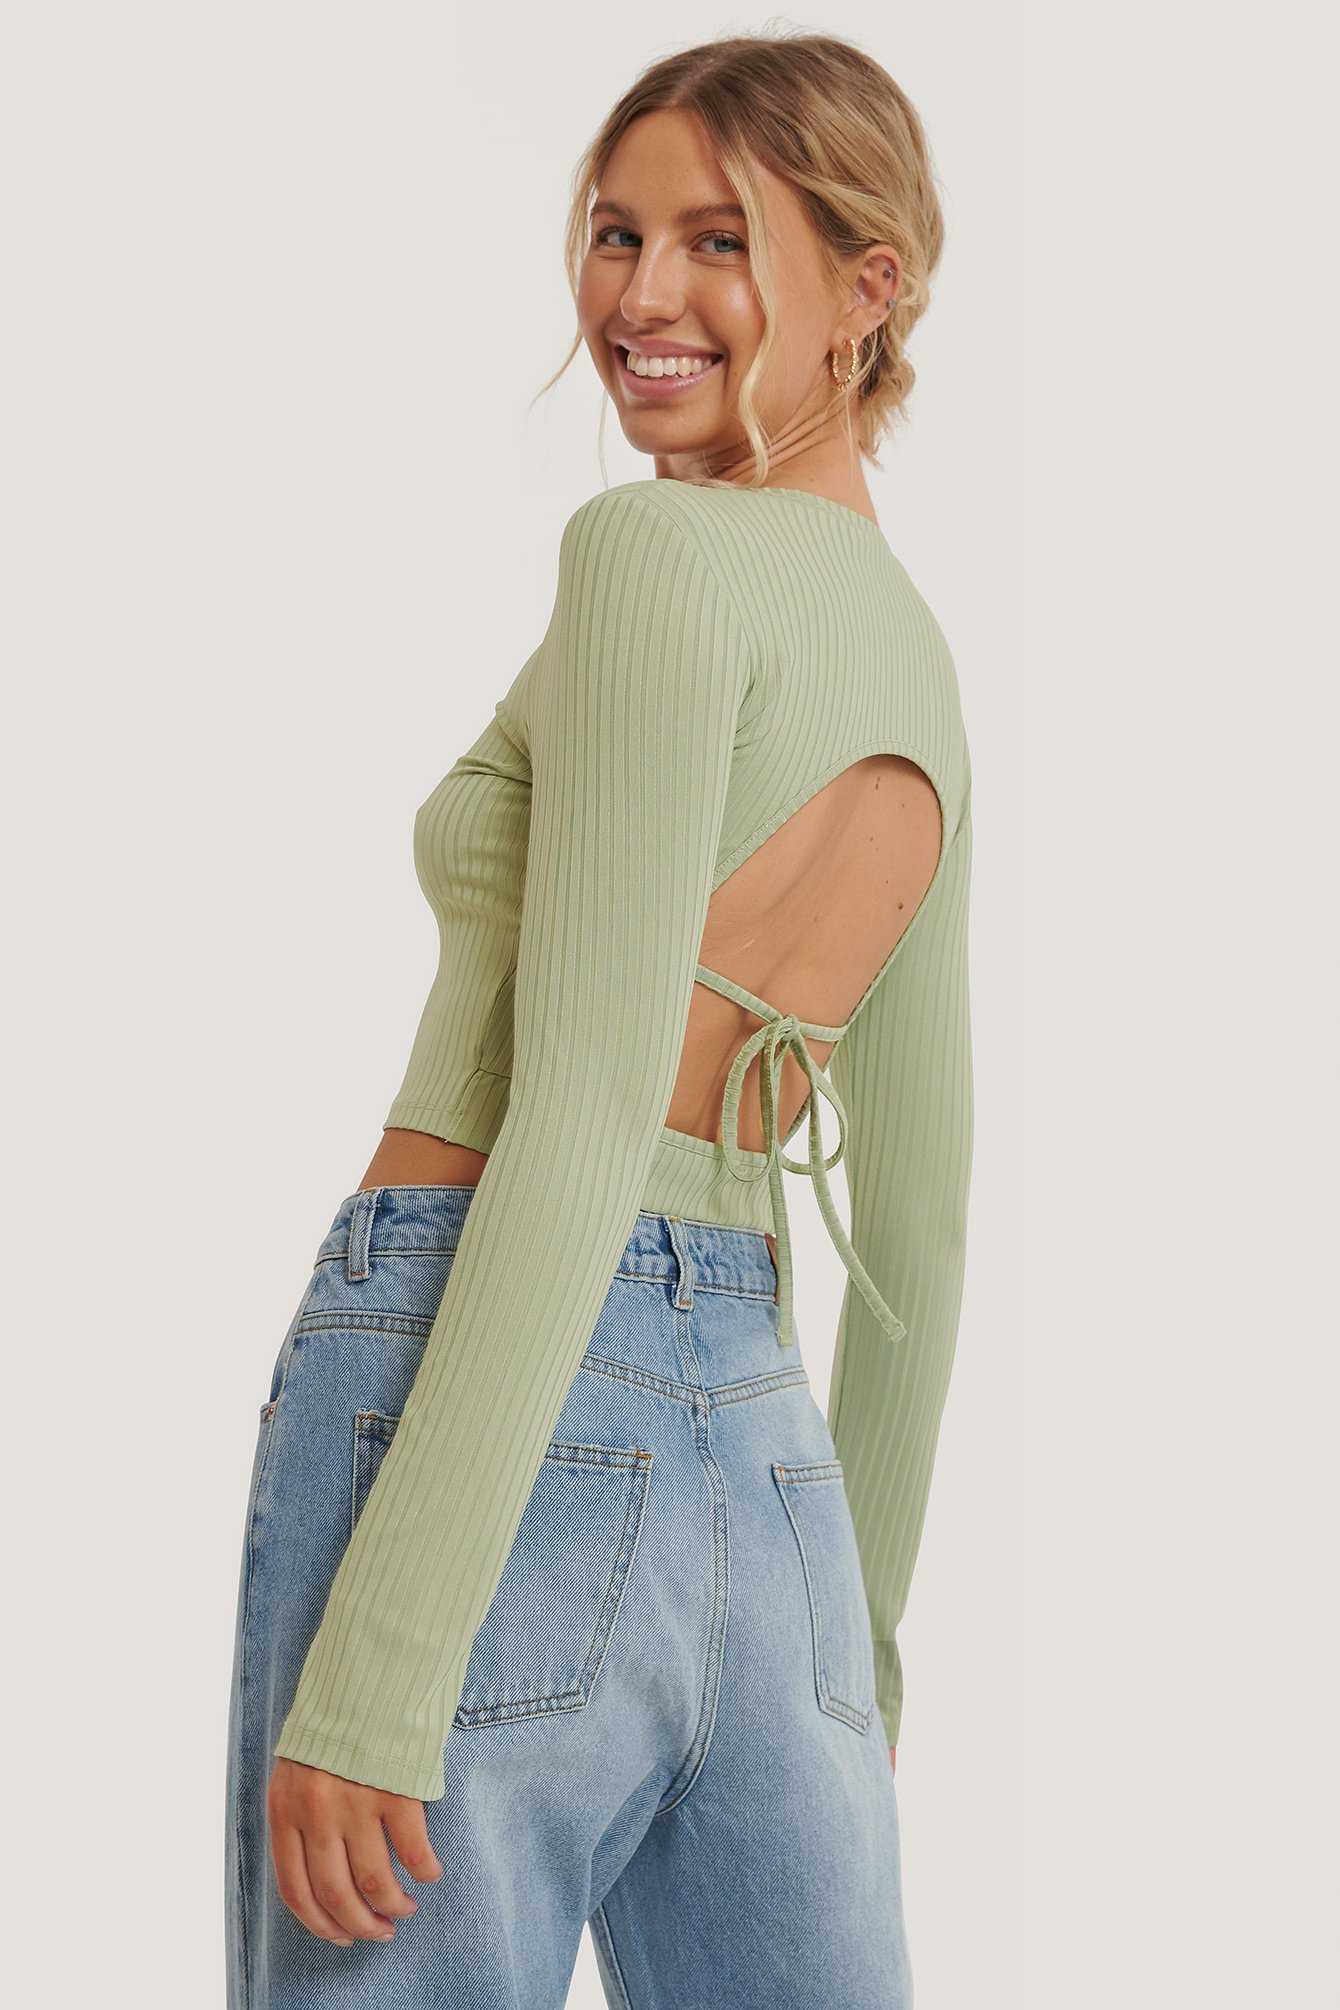 Khaki Rib Open Back Top